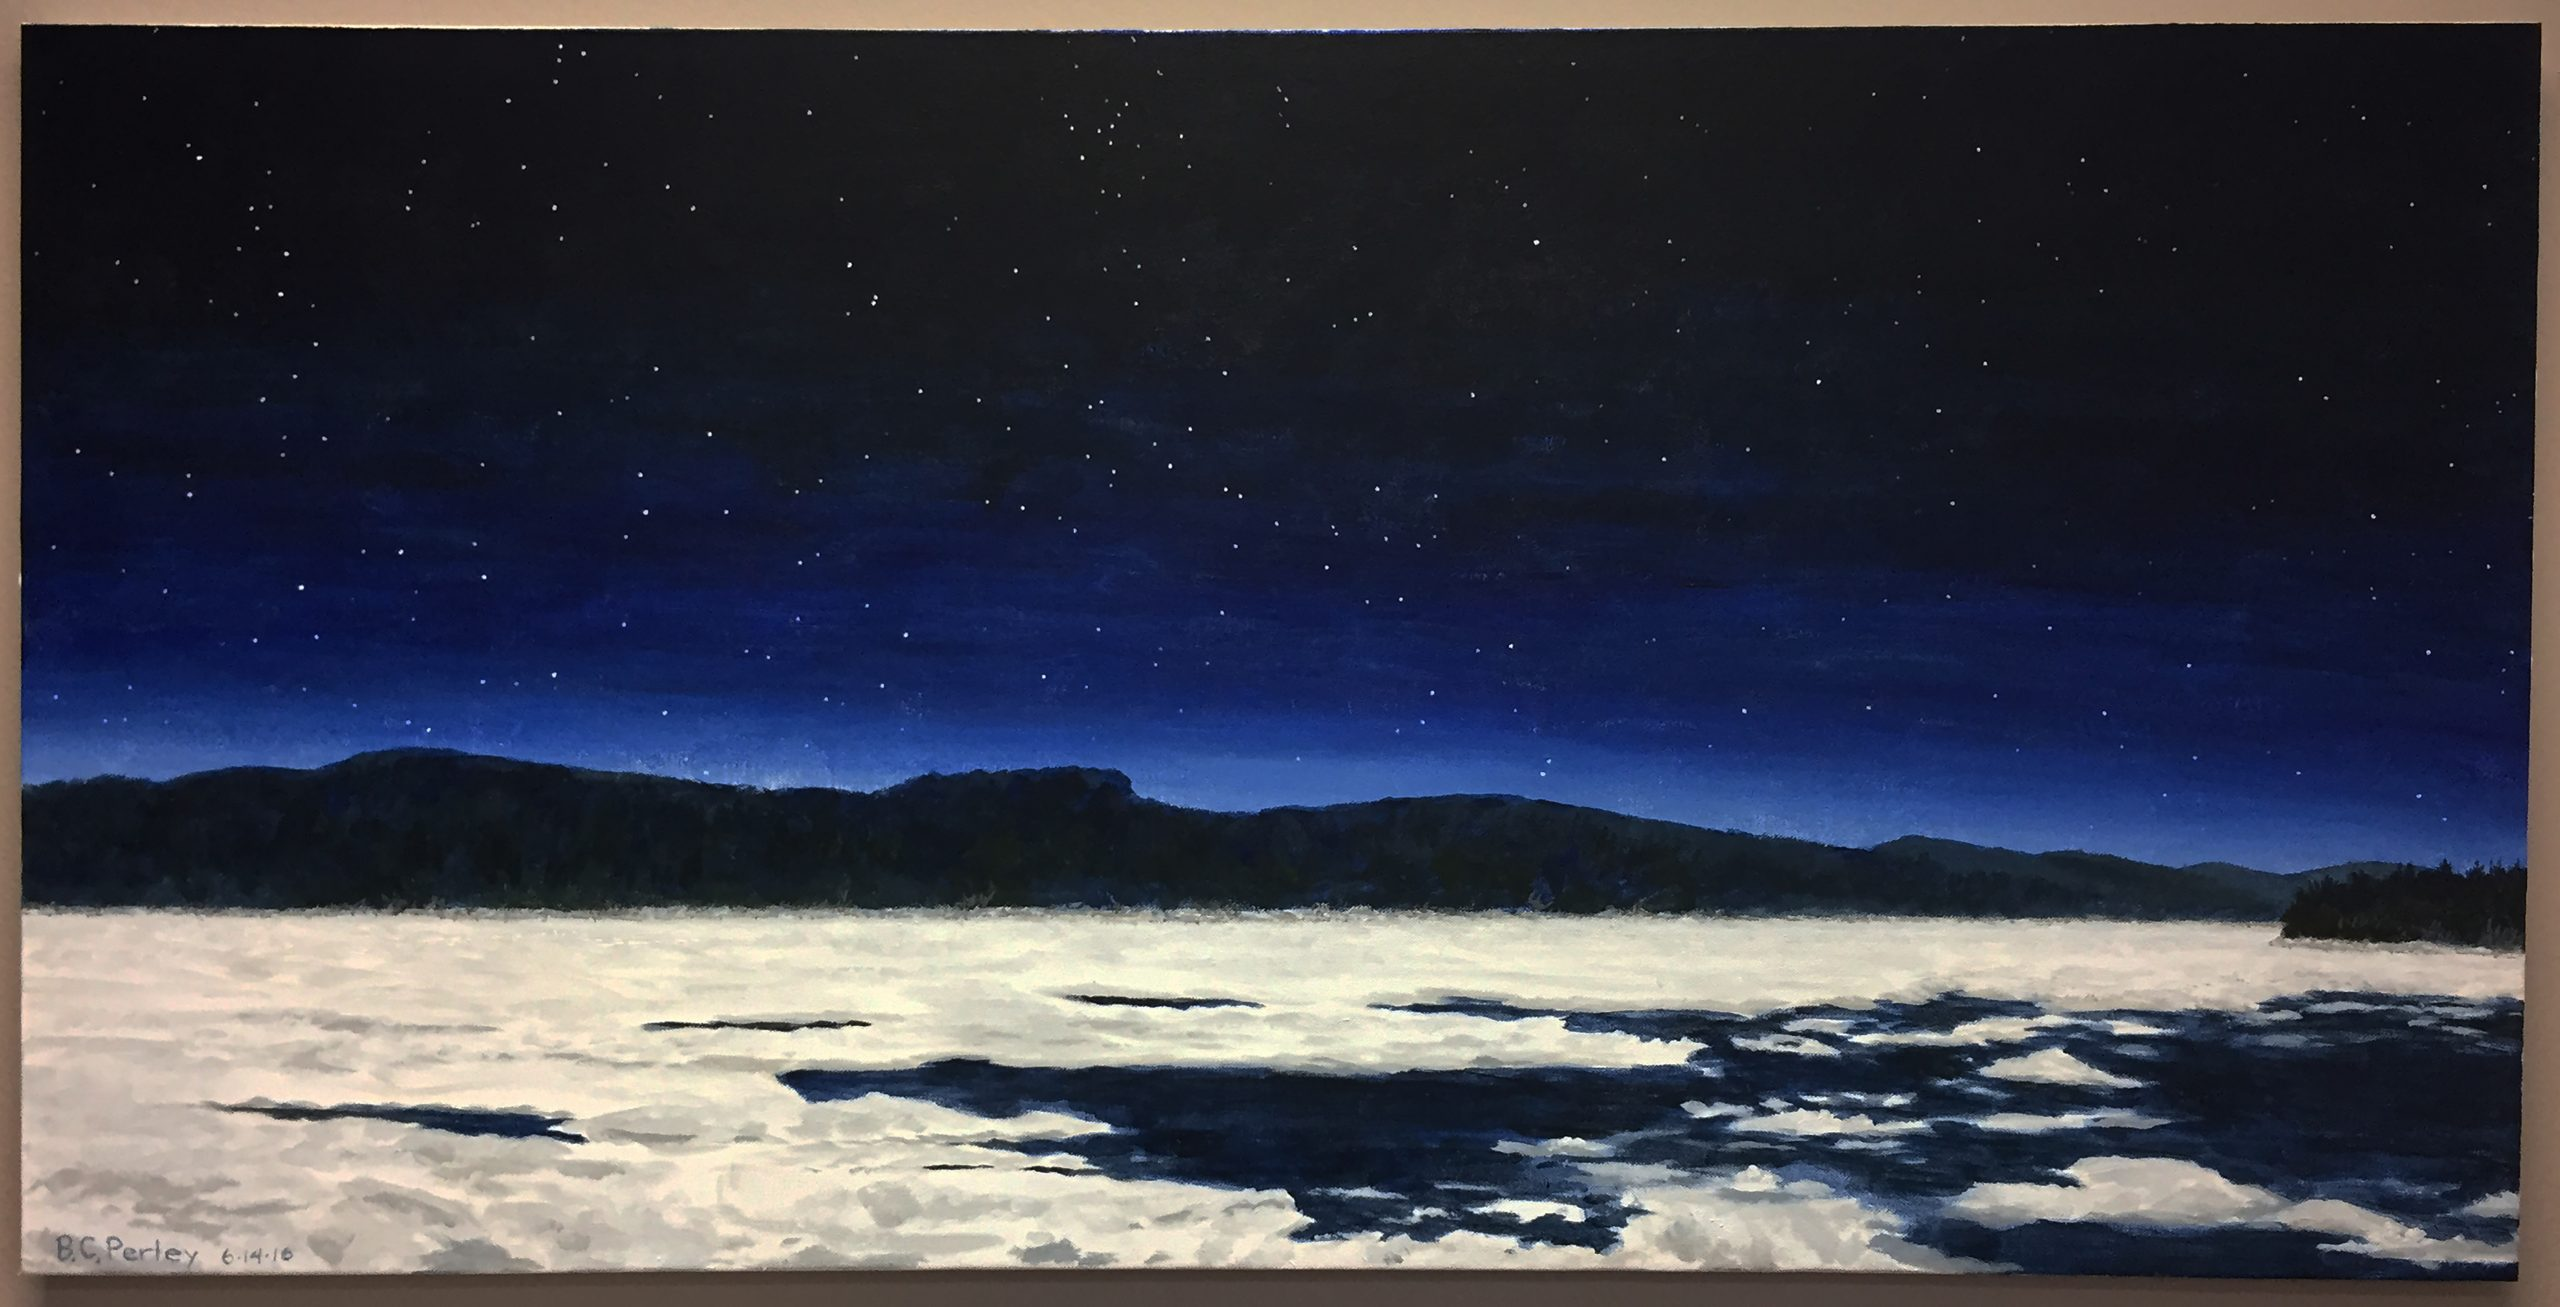 A painting of the winter solstice done by C.I.S. Director Dr. Bernard Perley of a lake partially covered in ice with mountains in the background, under a dark blue gradient sky full of stars.